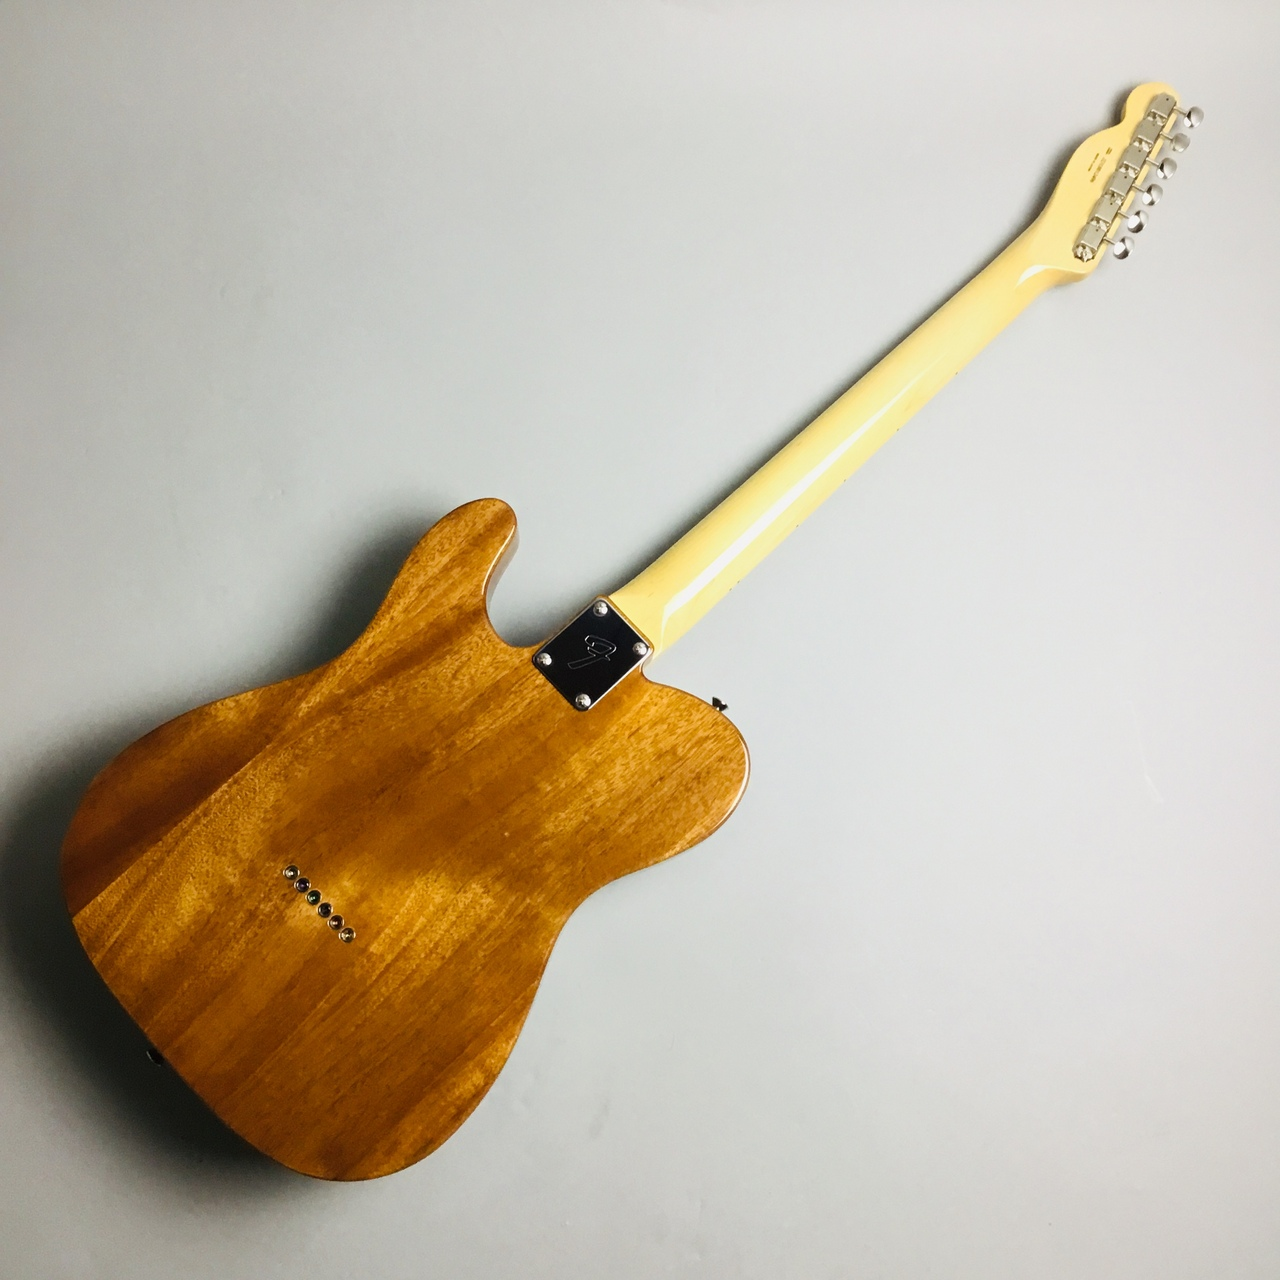 MADE IN JAPAN TRADITIONAL 69 TELECASTER THINLINEの全体画像(縦)